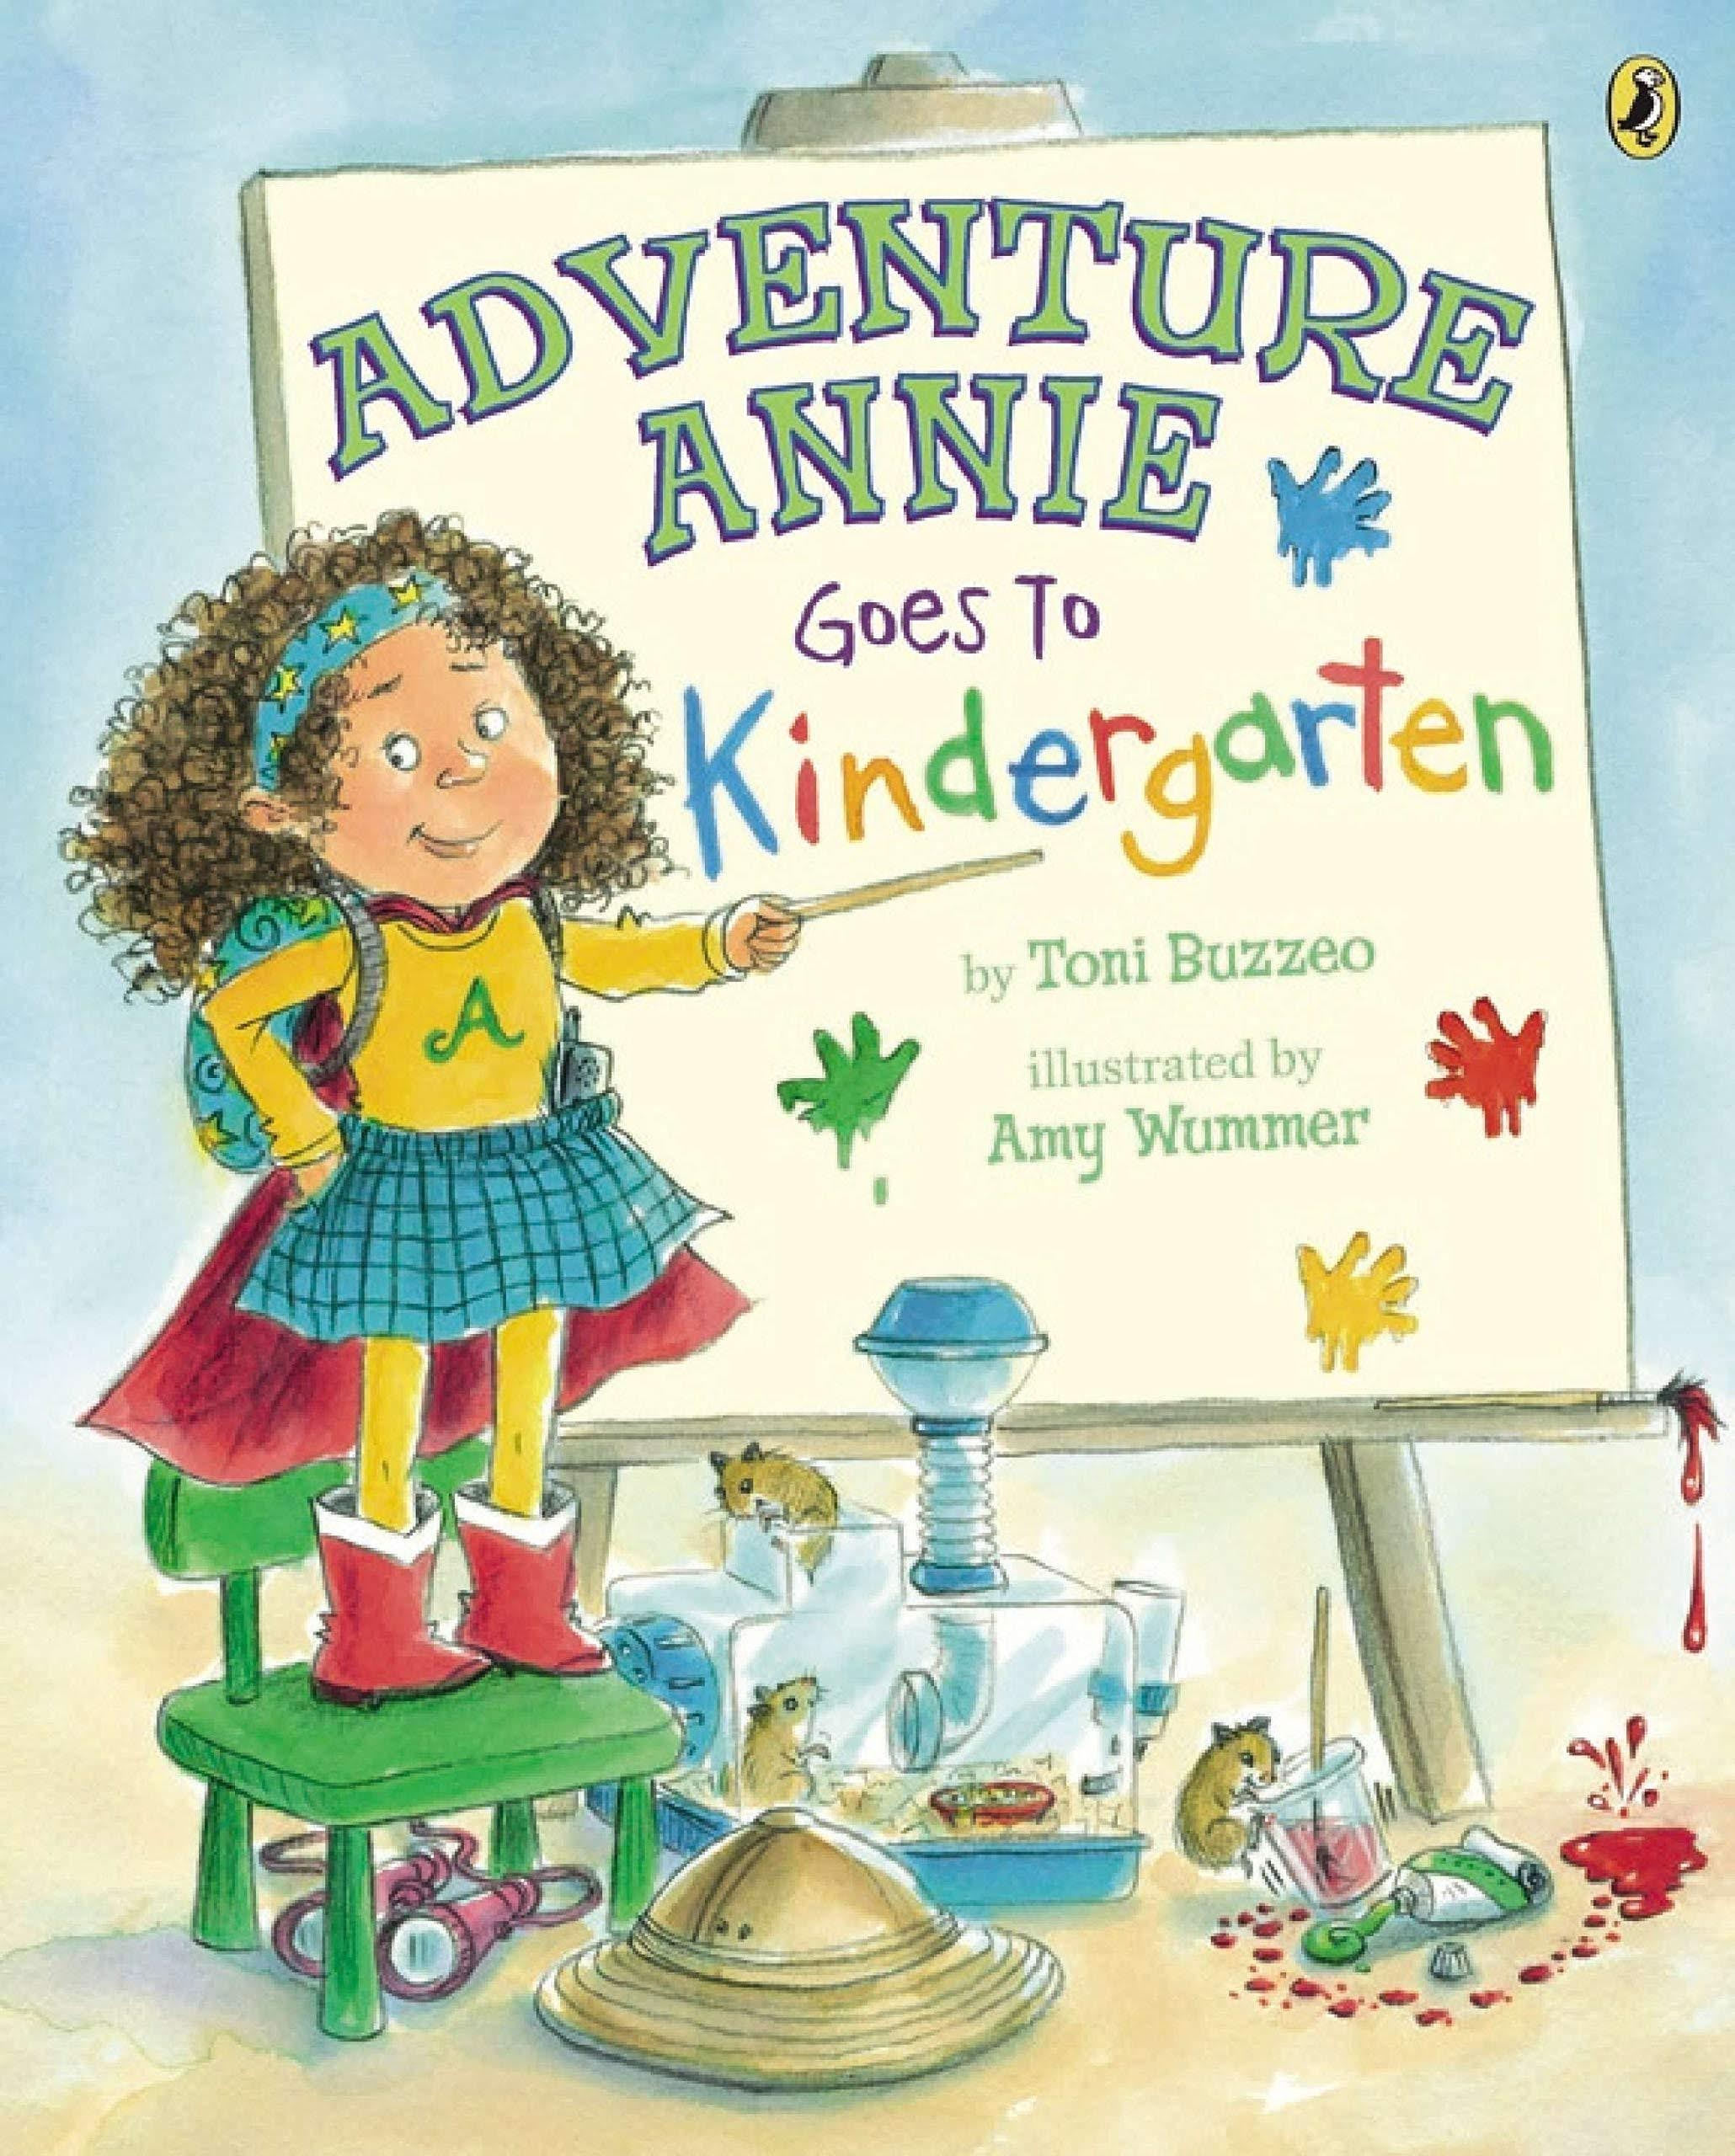 Adventure Annie Goes to Kindergarten by Toni Buzzeo and illustrated by Amy Wummer